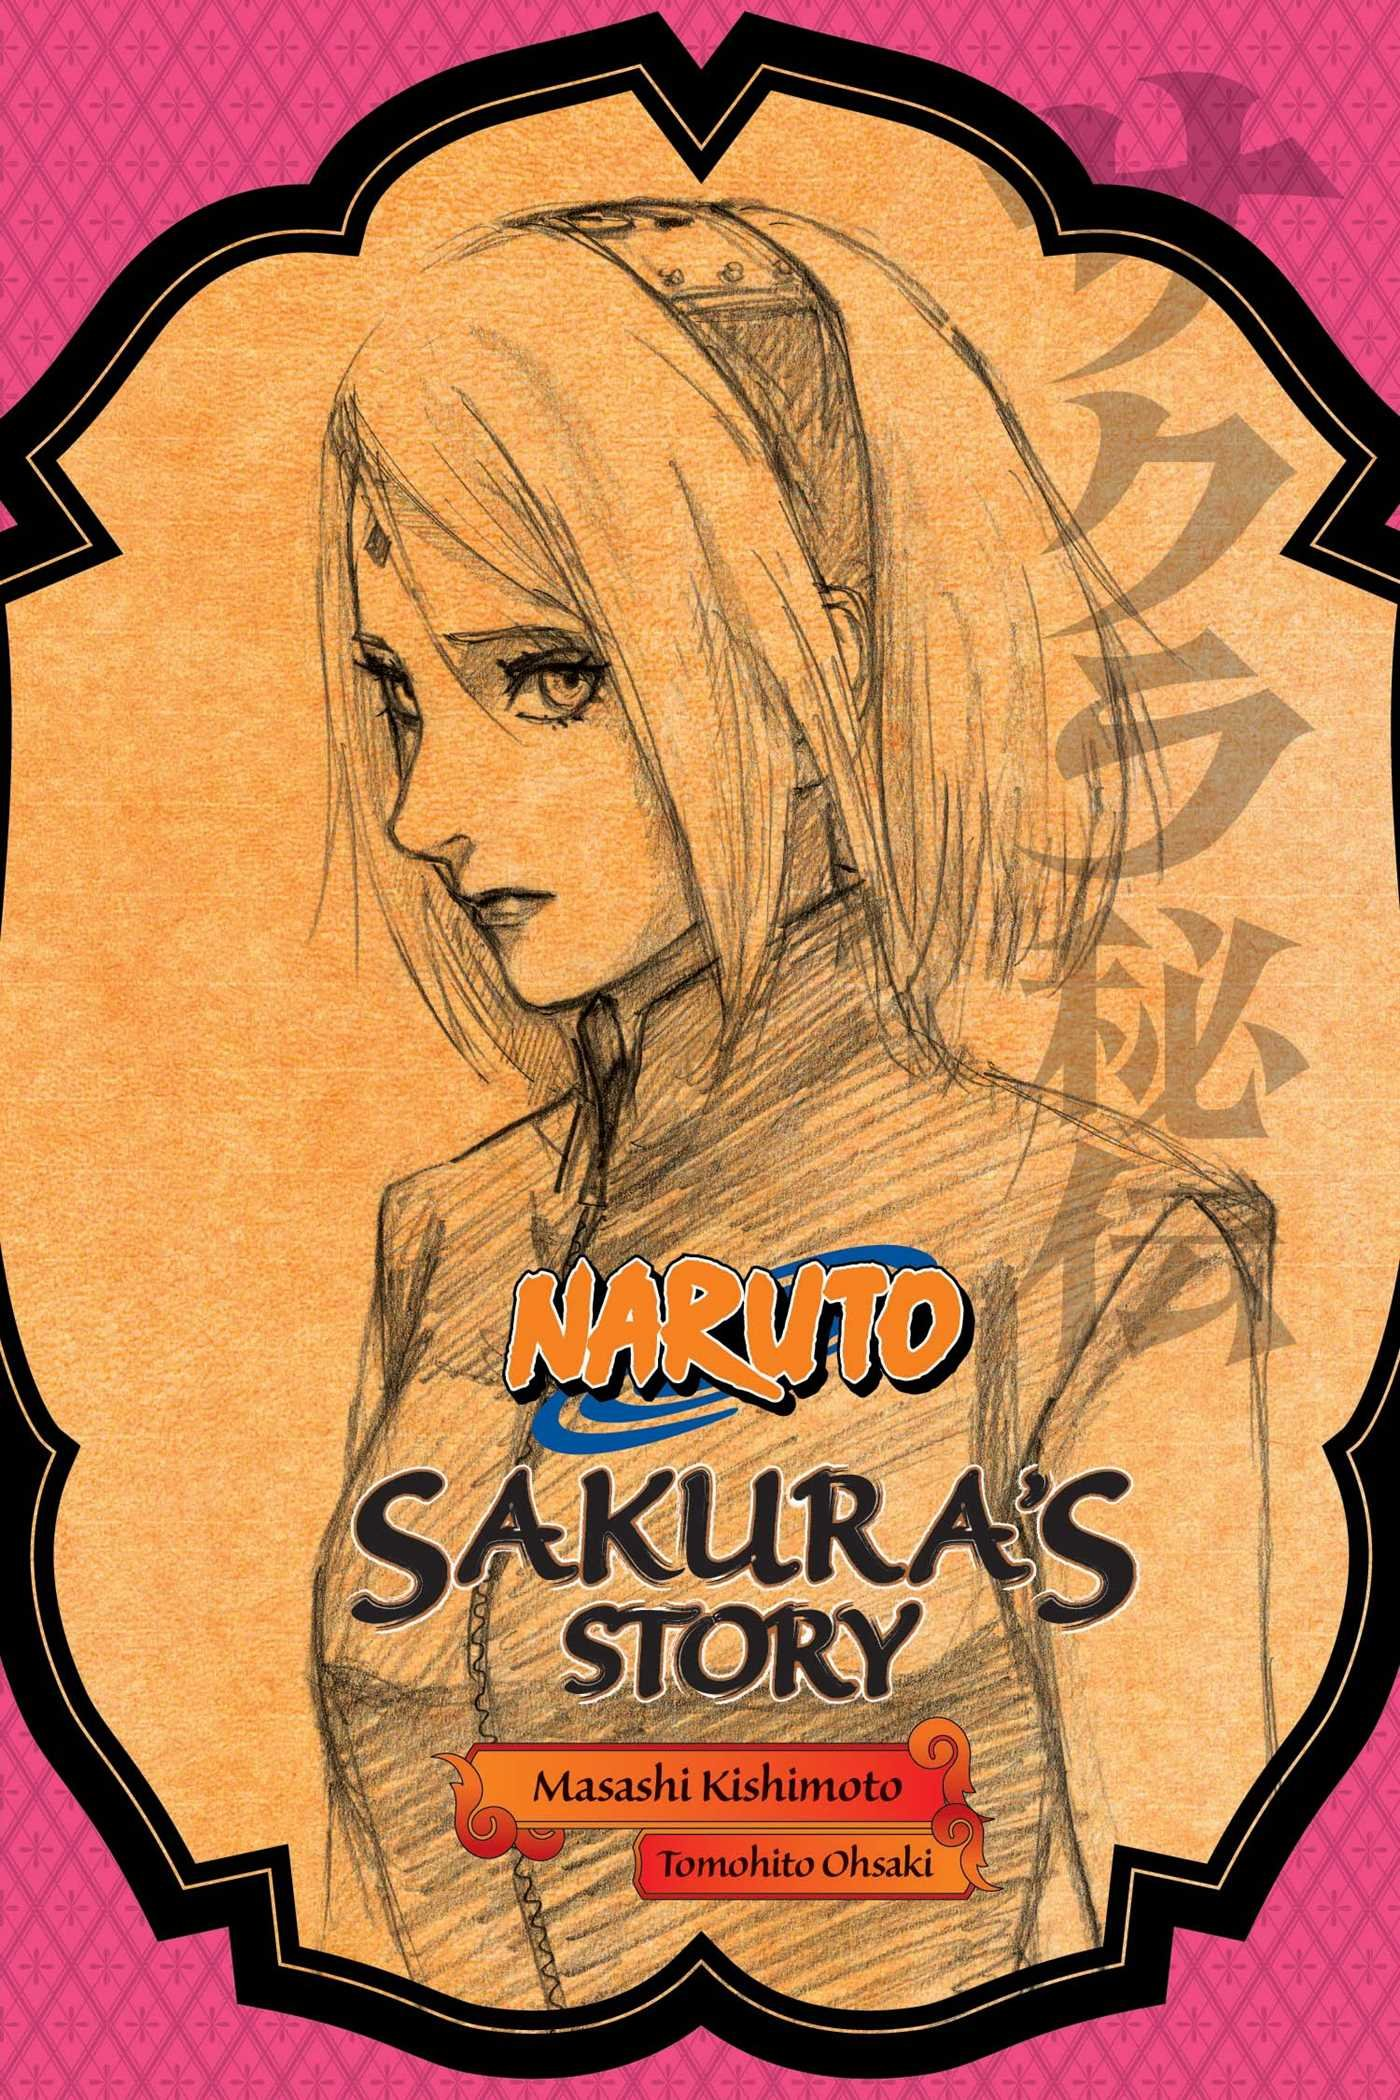 Buy naruto sakuras story book online at low prices in india naruto sakuras story reviews ratings amazon in